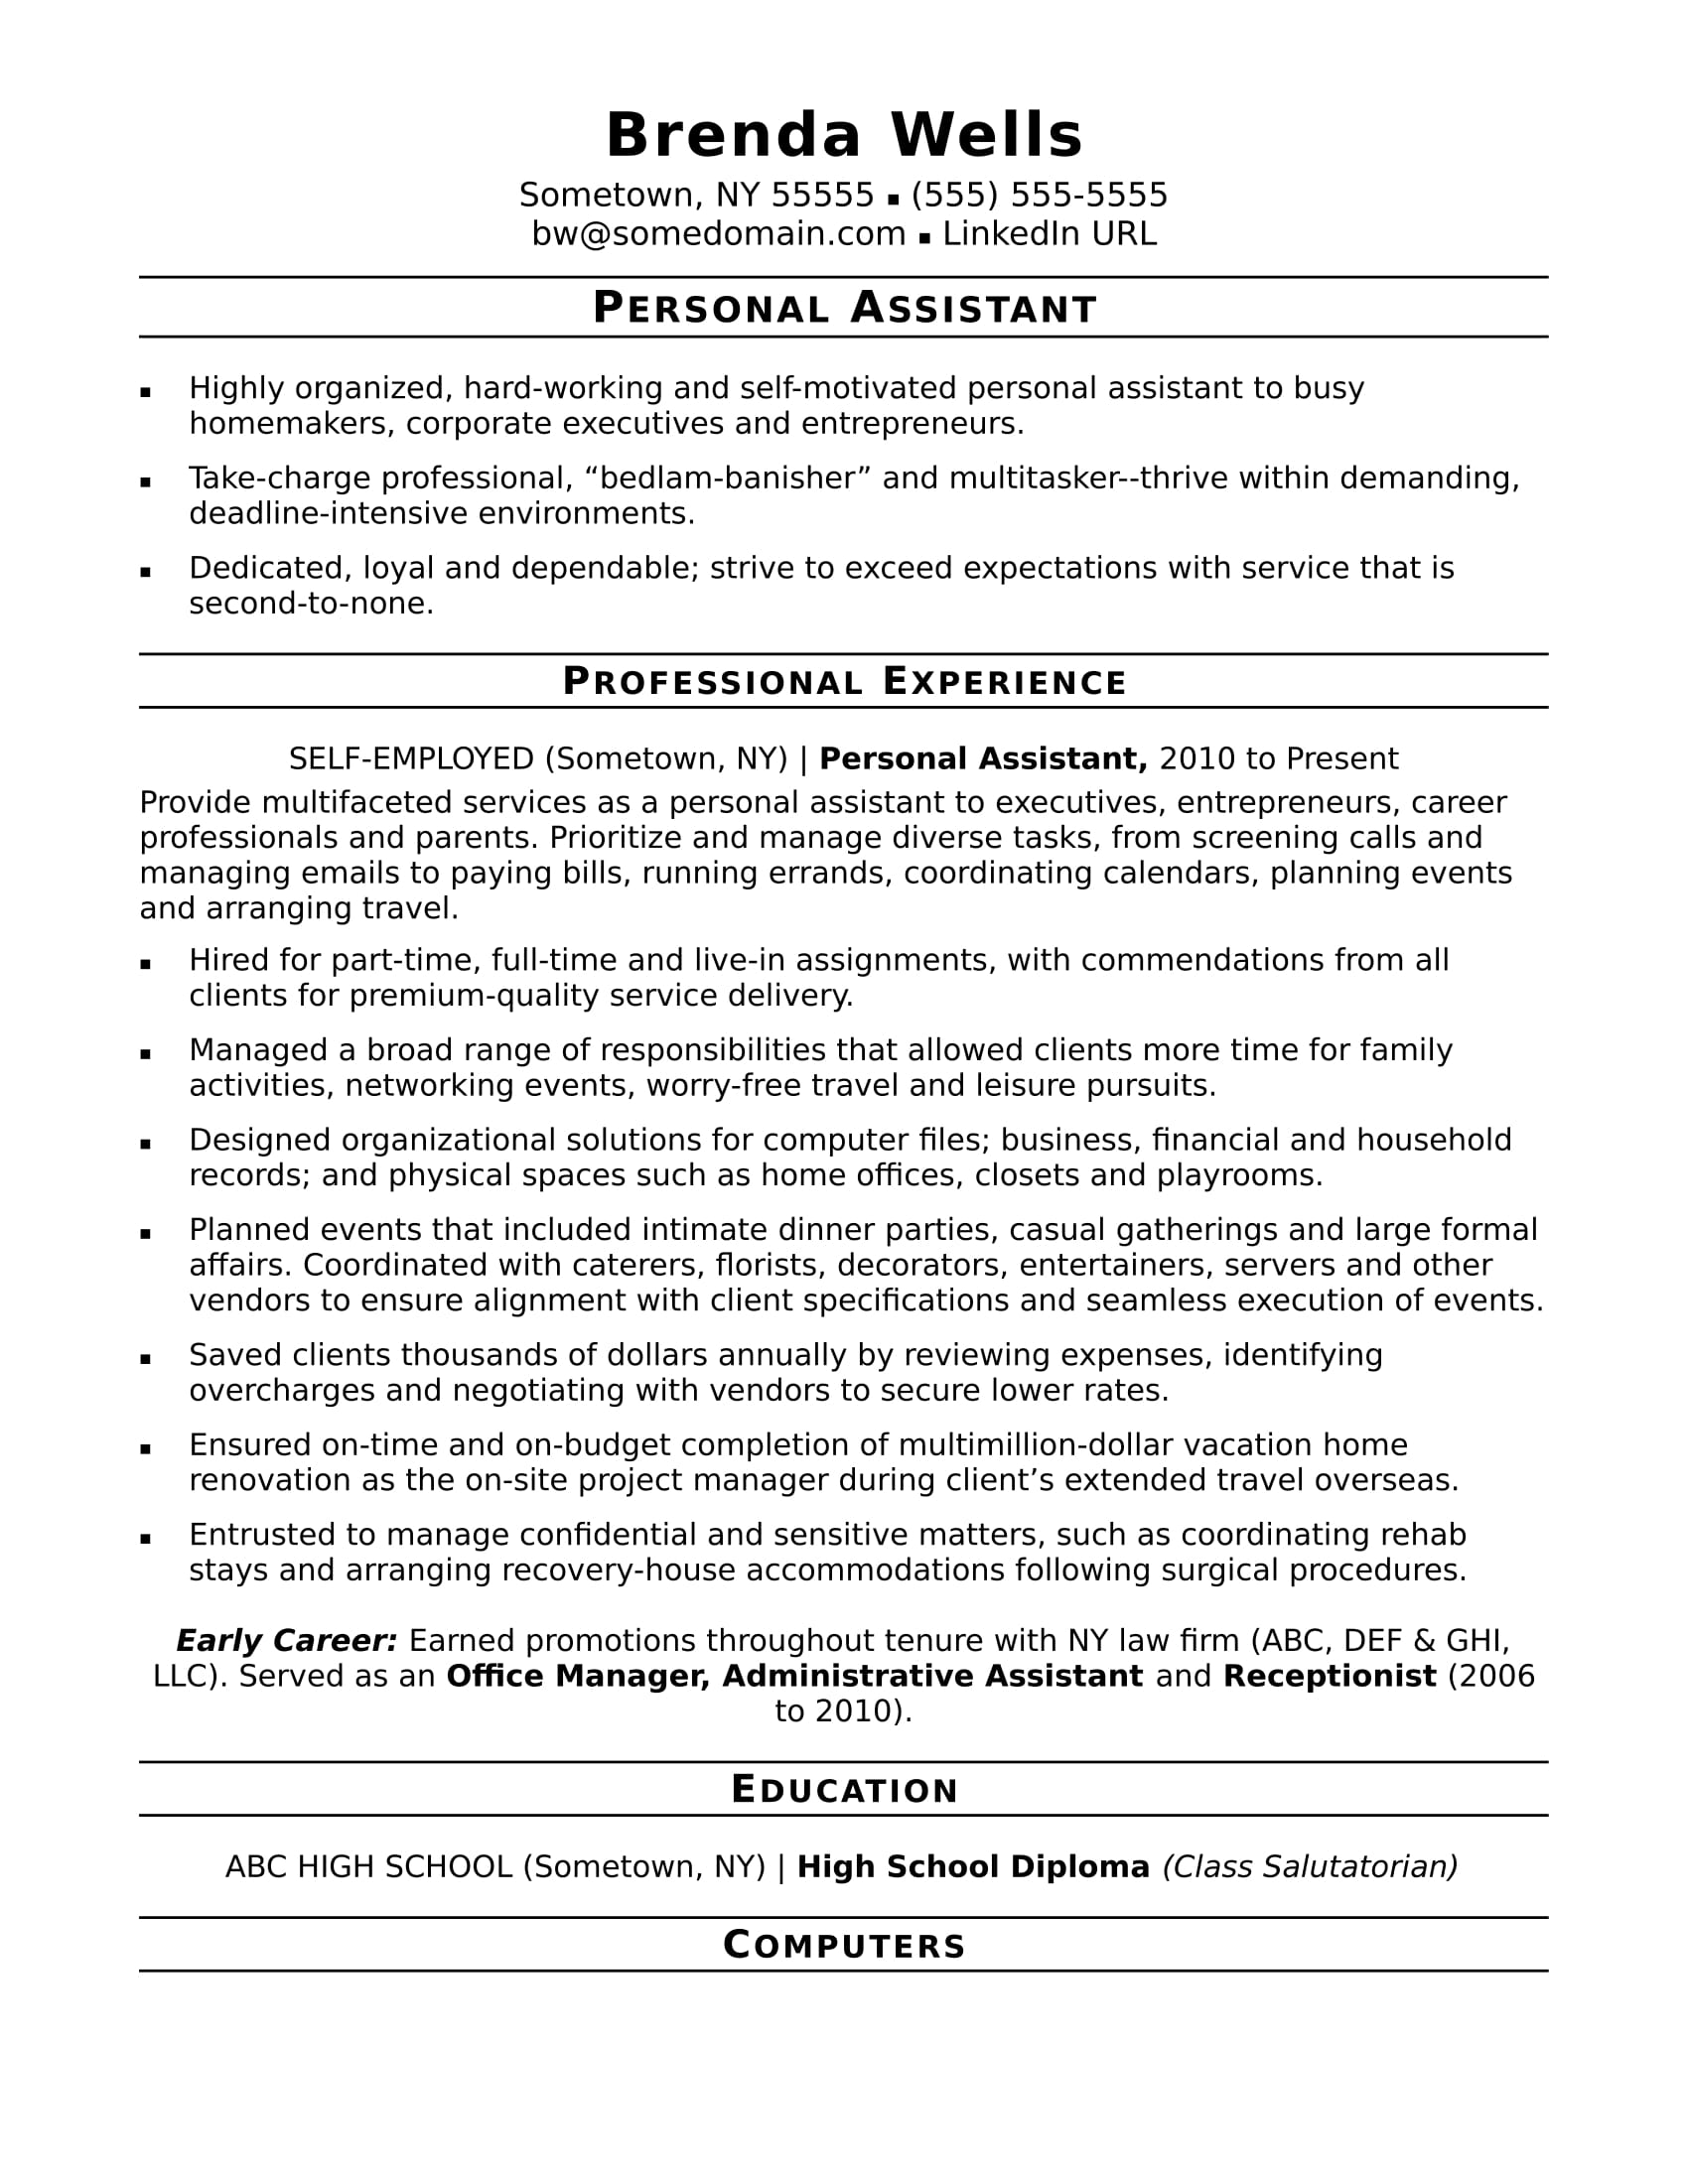 personal assistant resume sample - Monster Sample Resume